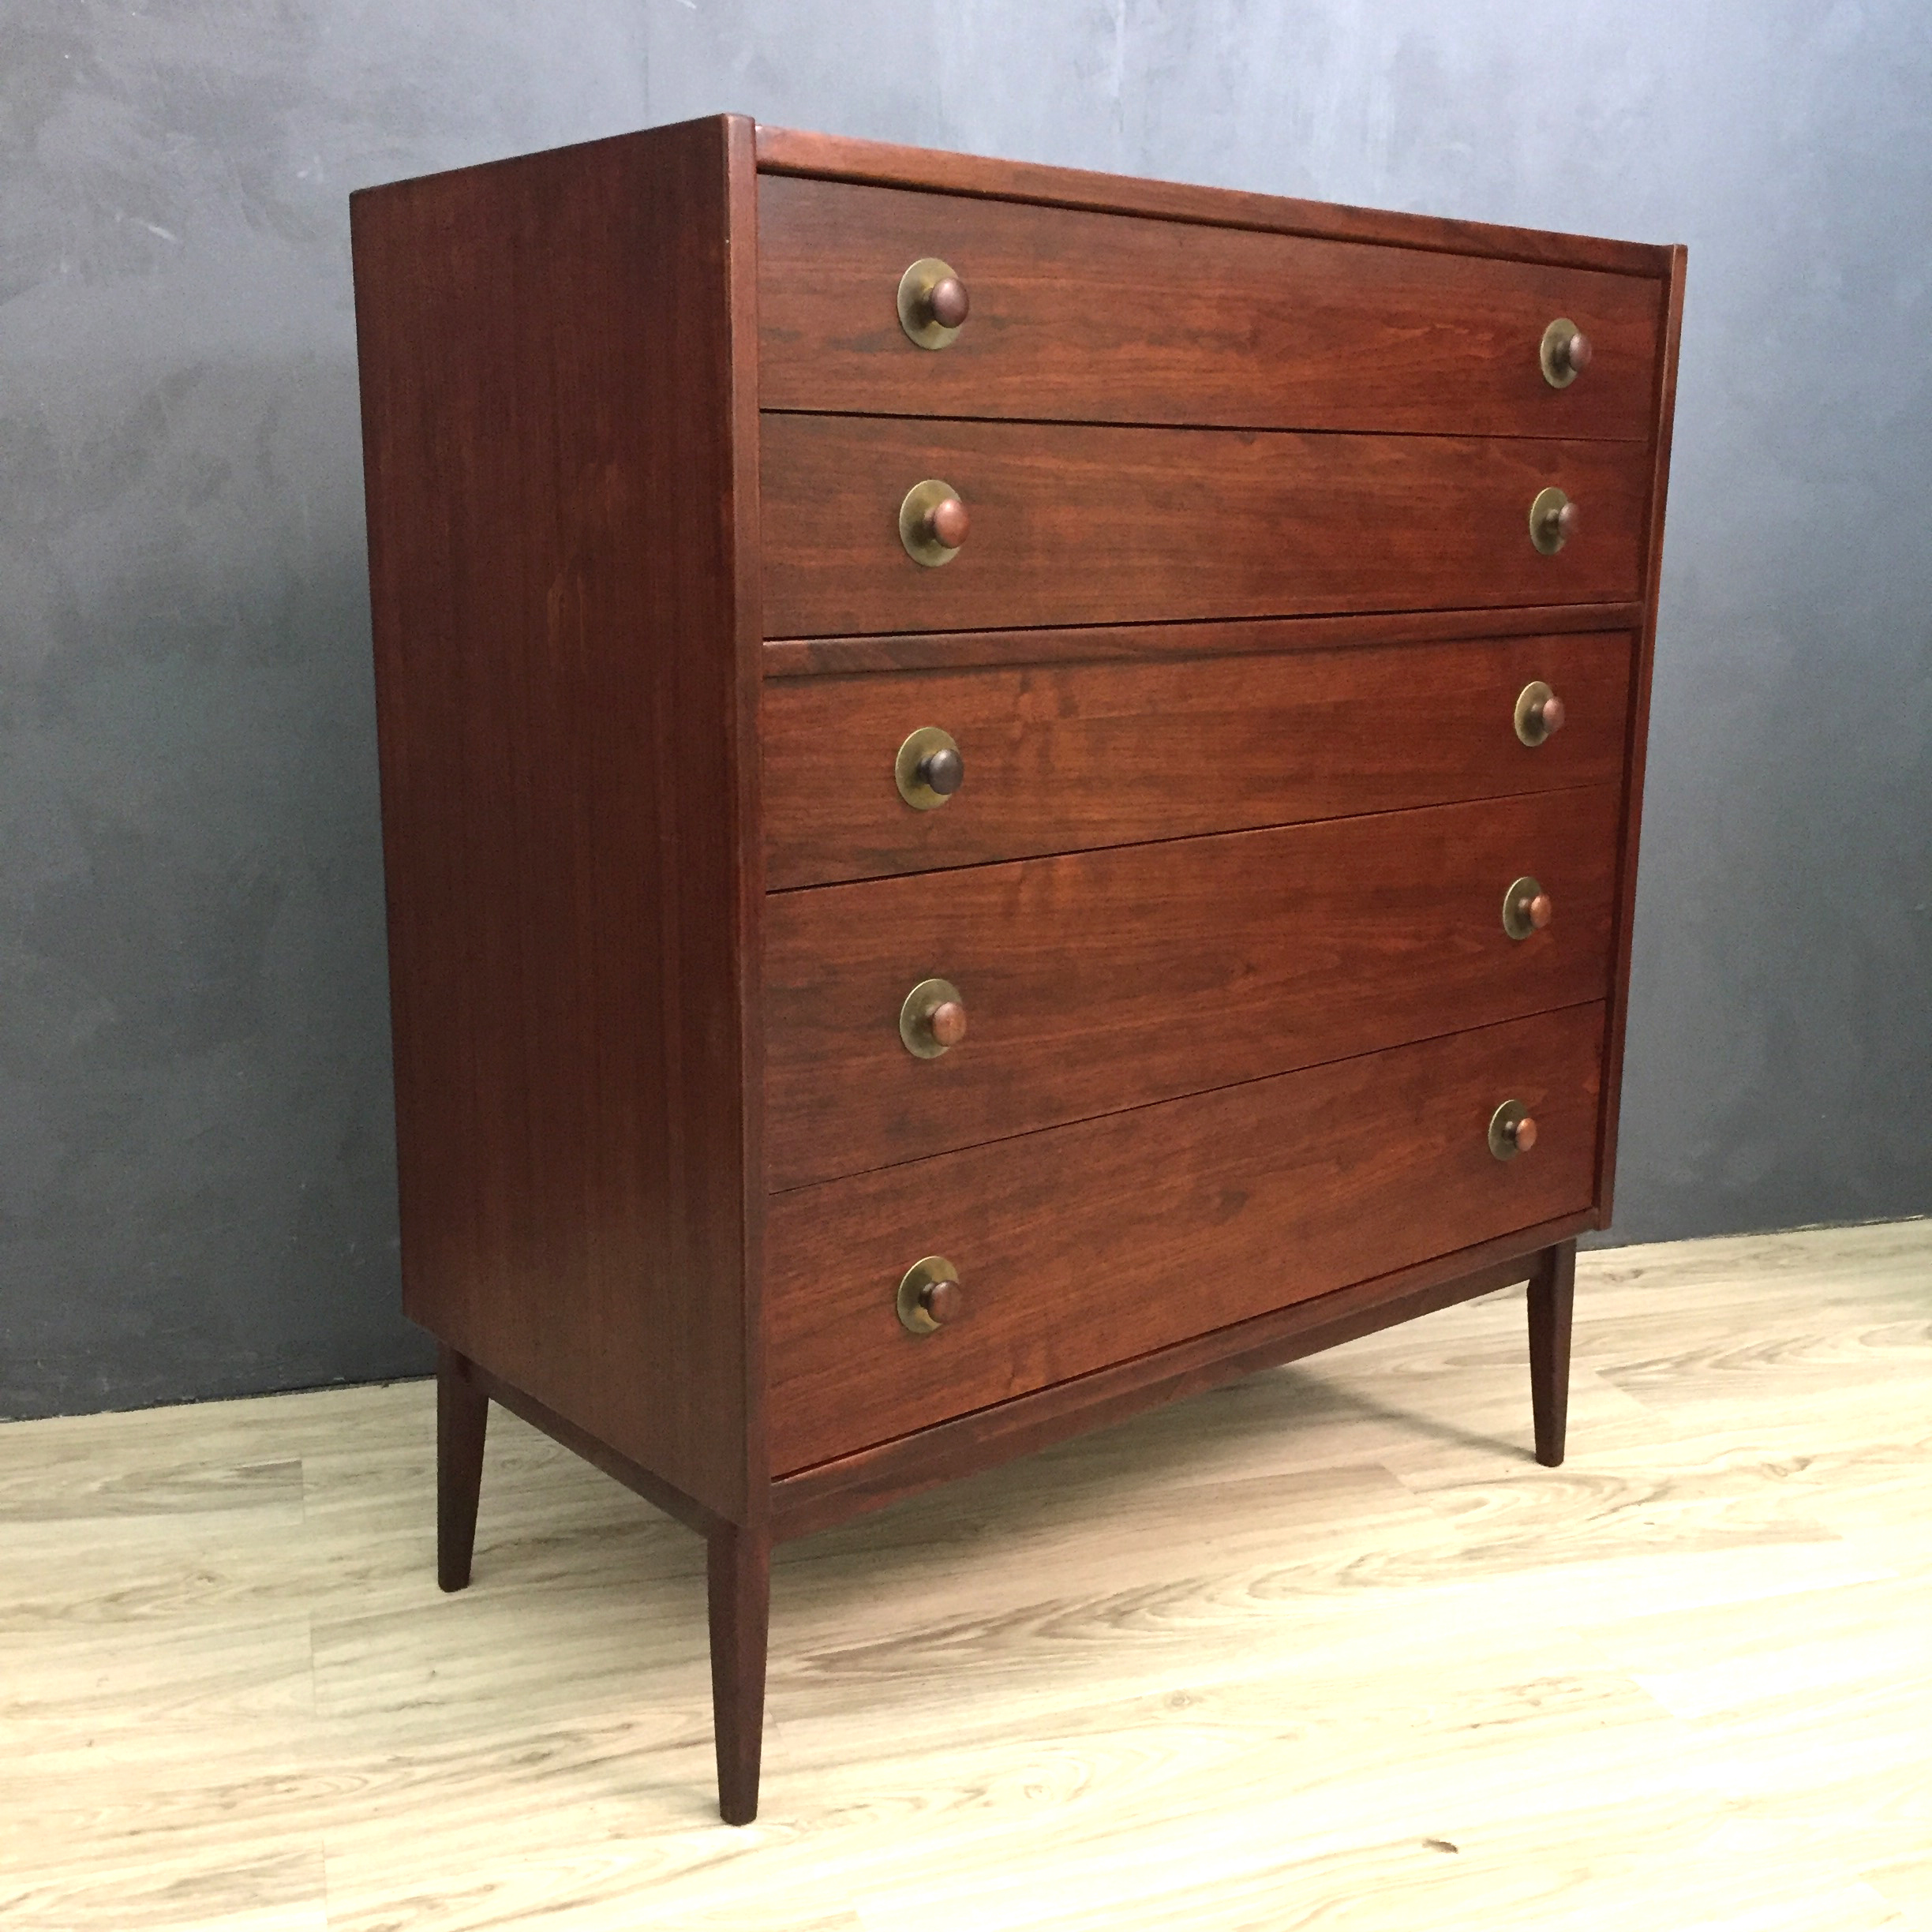 Founders Walnut Highboy Bureau